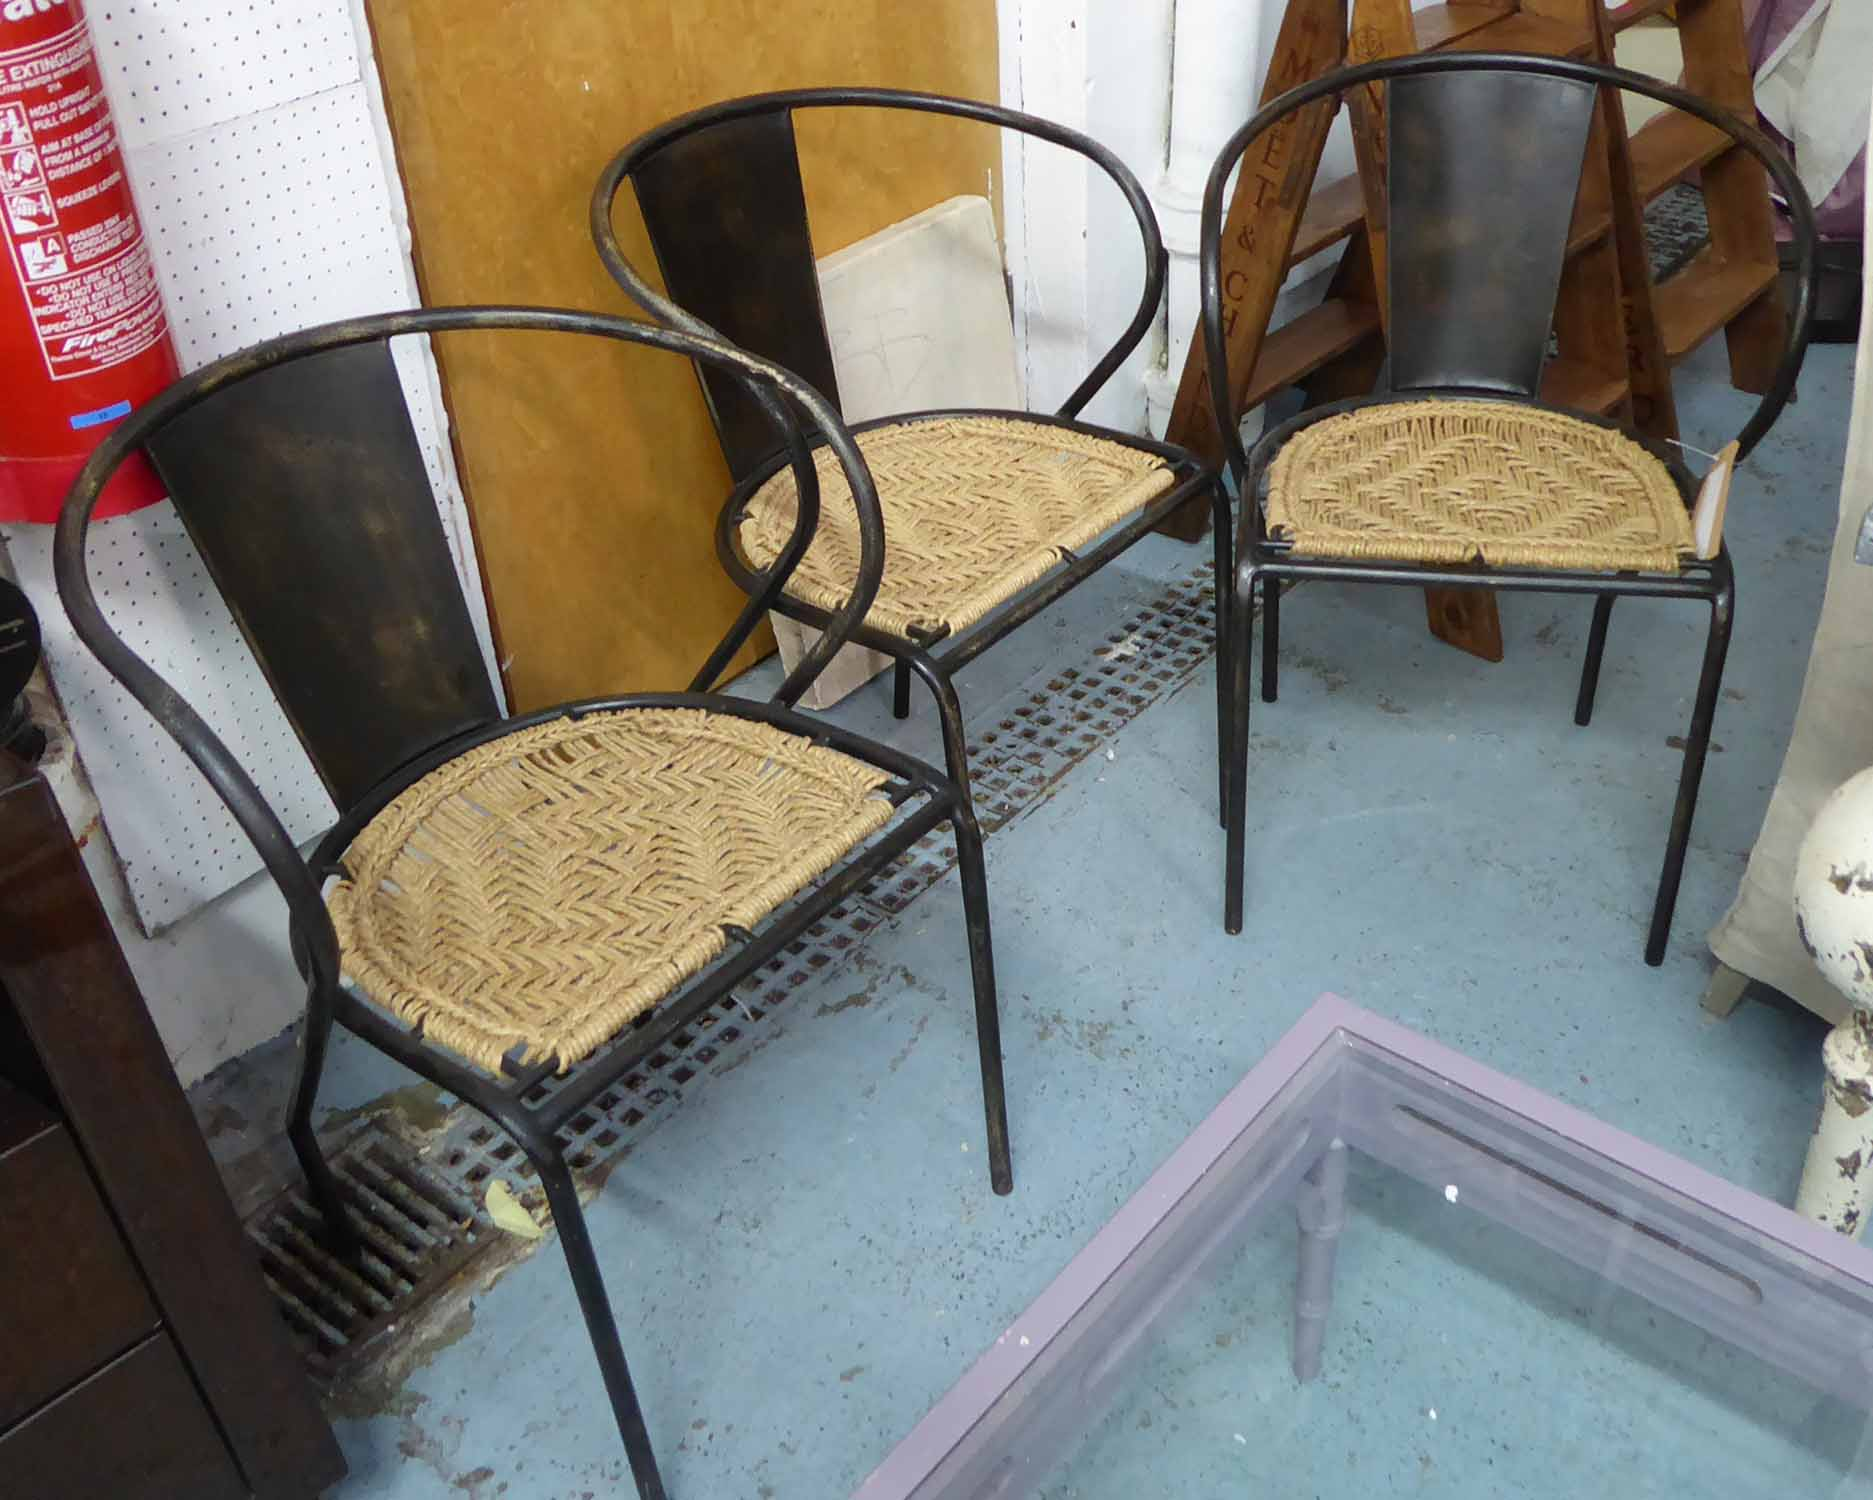 Lot 59 - NUKUKU CHAIRS, a set of three, Industrial metal and wicker dining chairs, 80cm H.